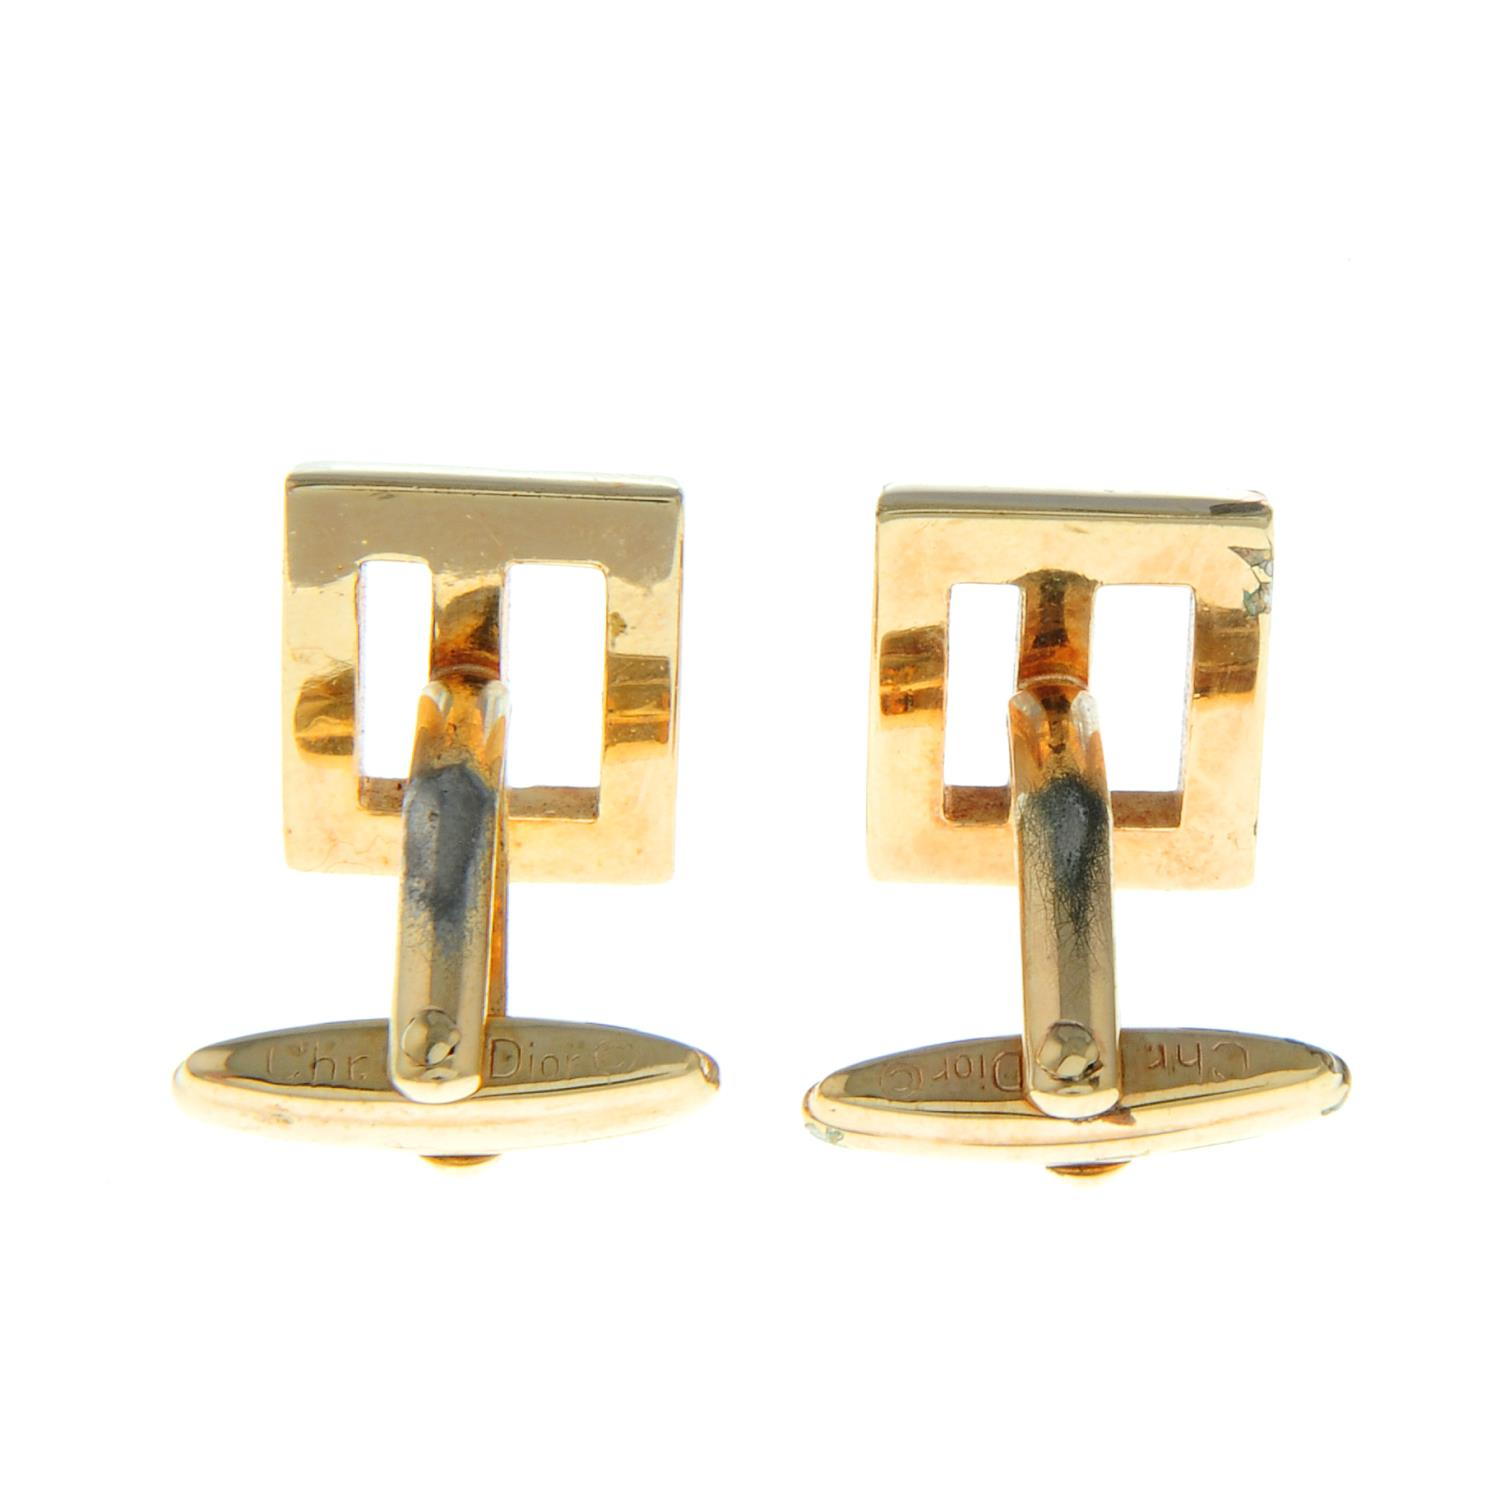 A pair of textured monogram cufflinks, by Christian Dior.Signed Chr. - Image 3 of 3